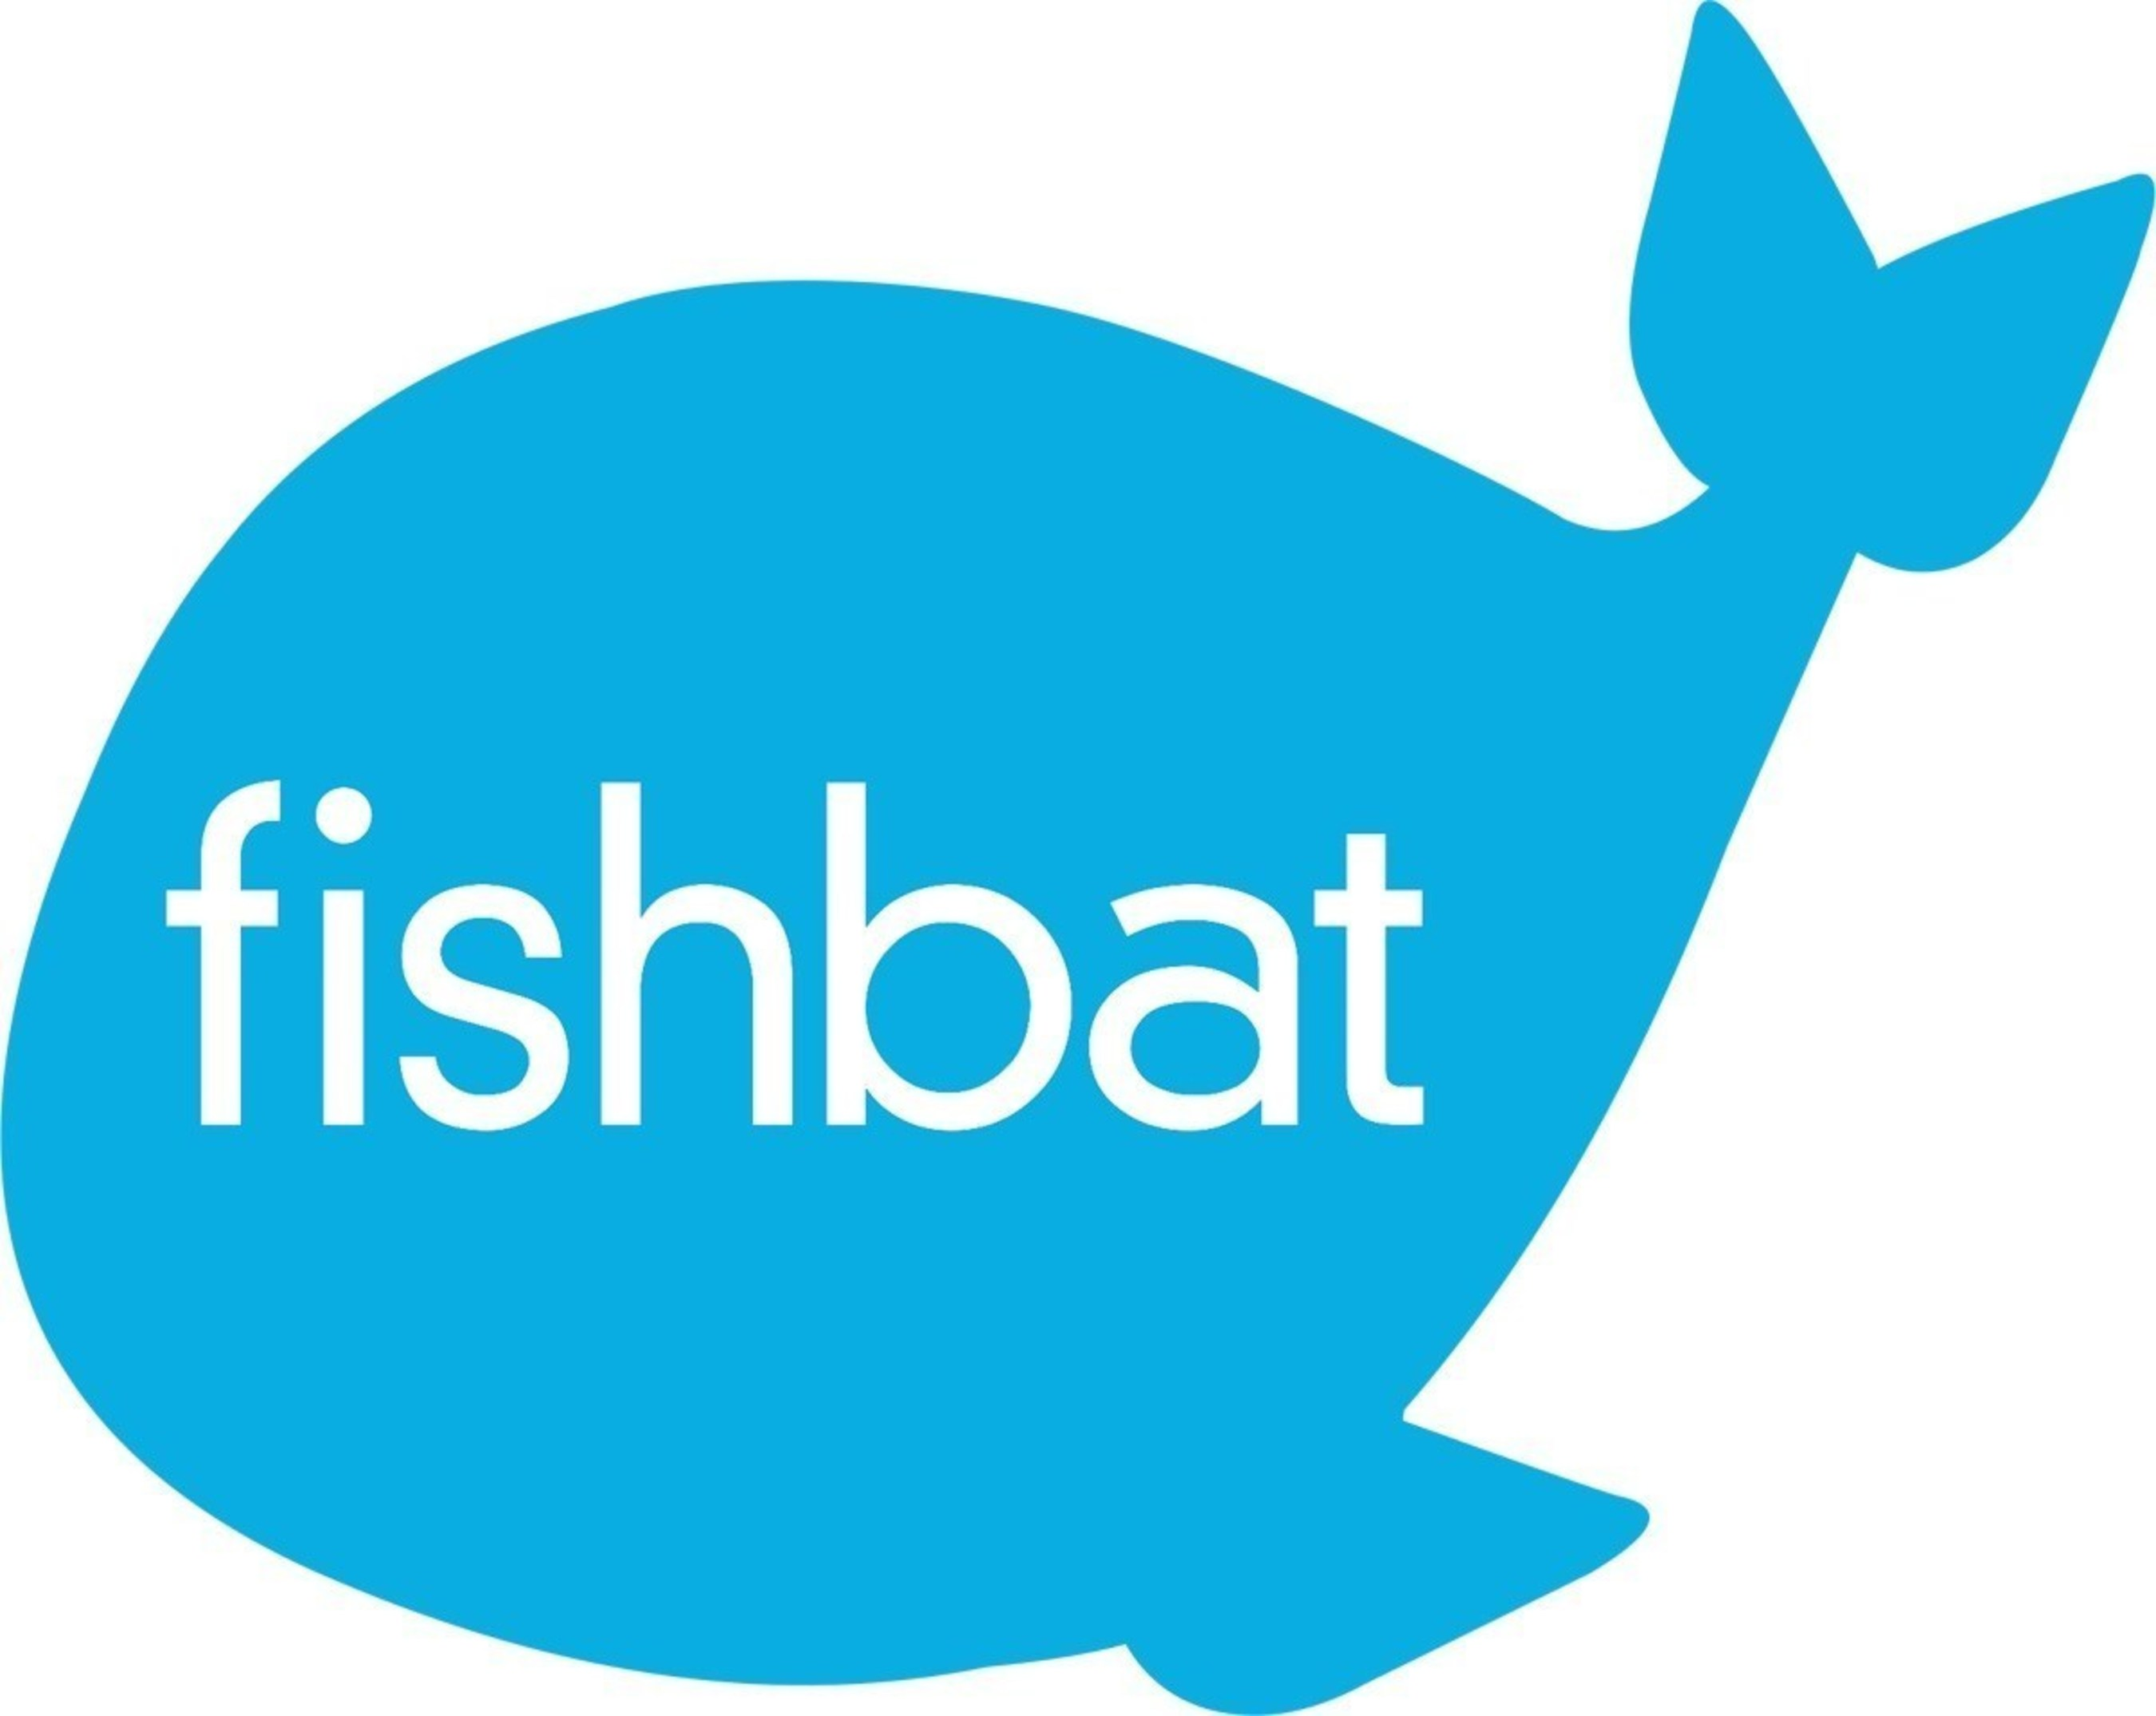 fishbat CMO Jennifer Calise Discusses 3 Online Branding Strategies That Work for All Industries